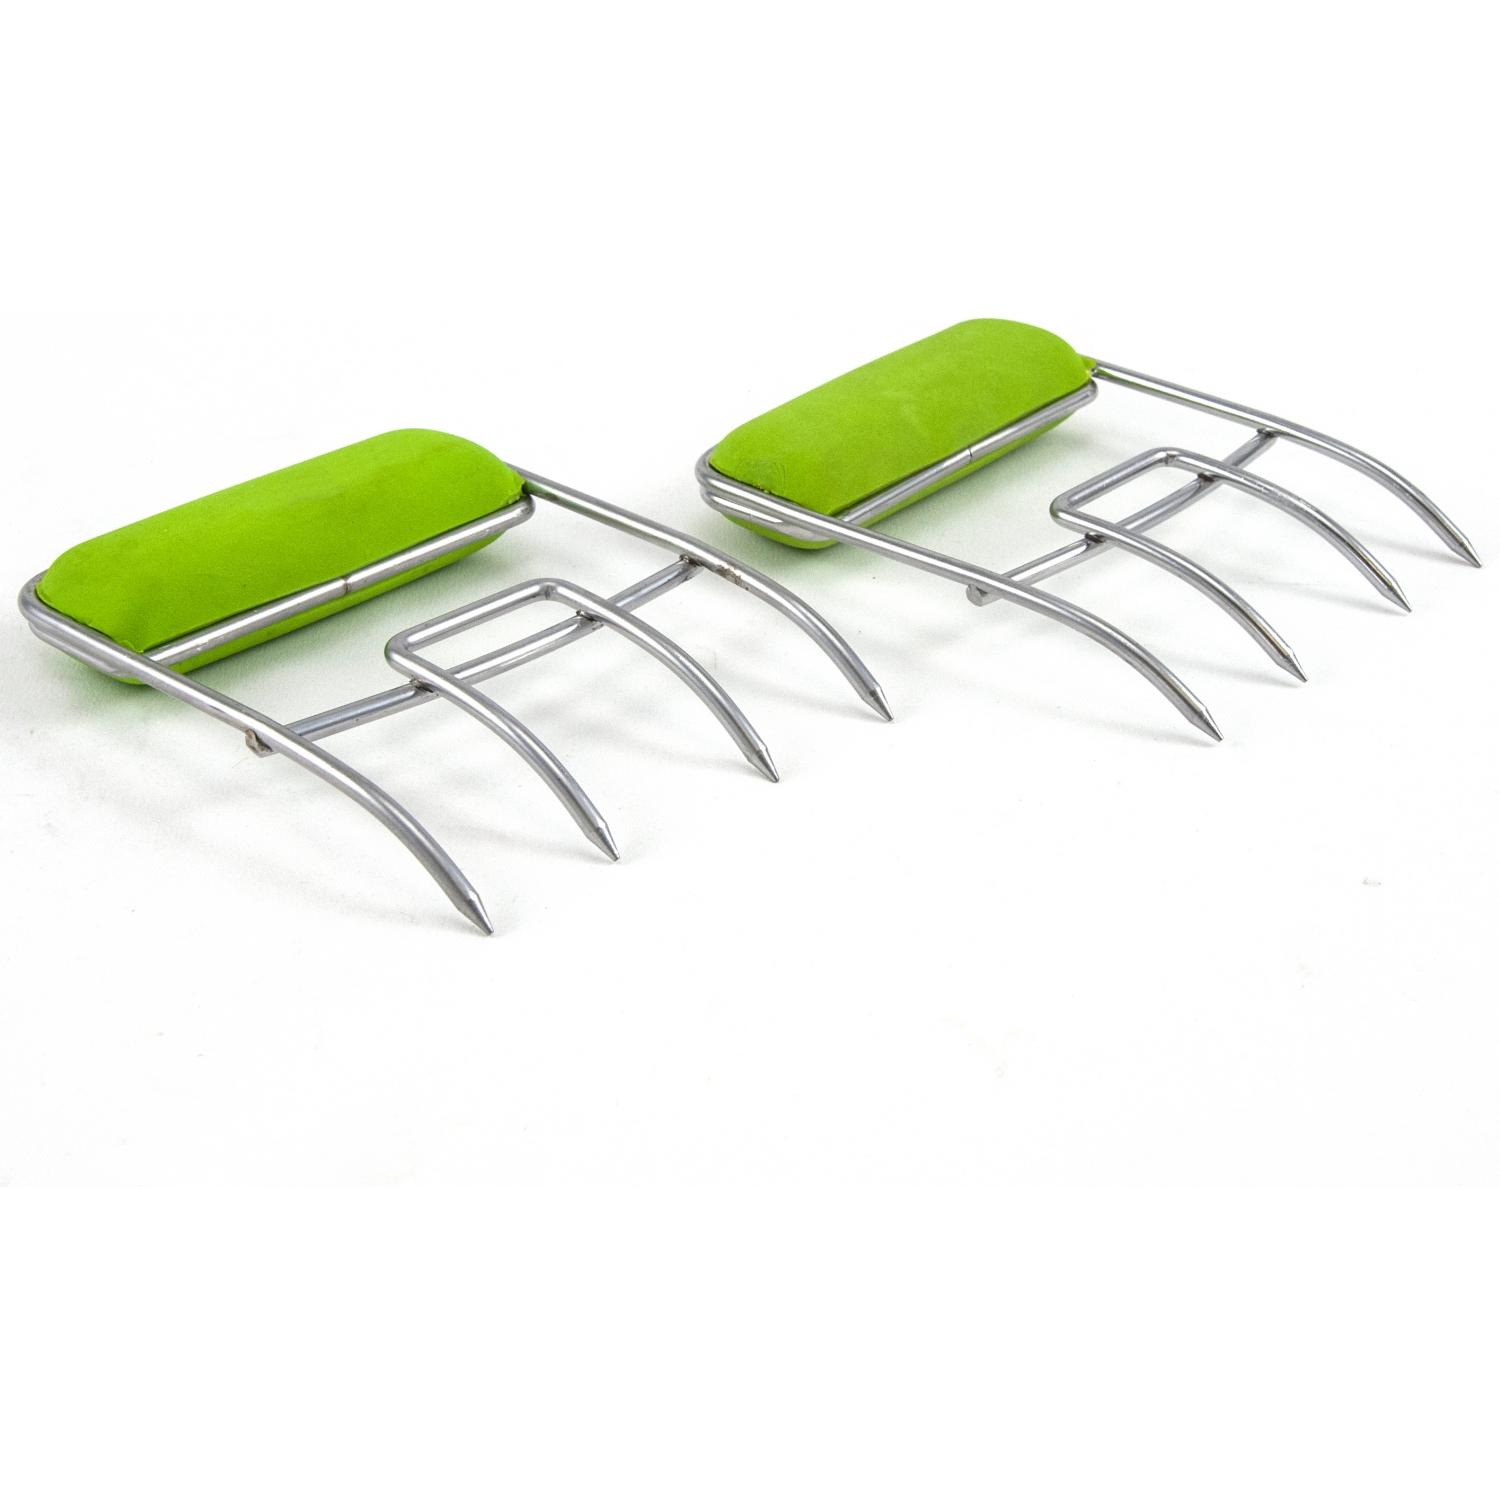 Colored Stainless Steel Meat Claws - Green